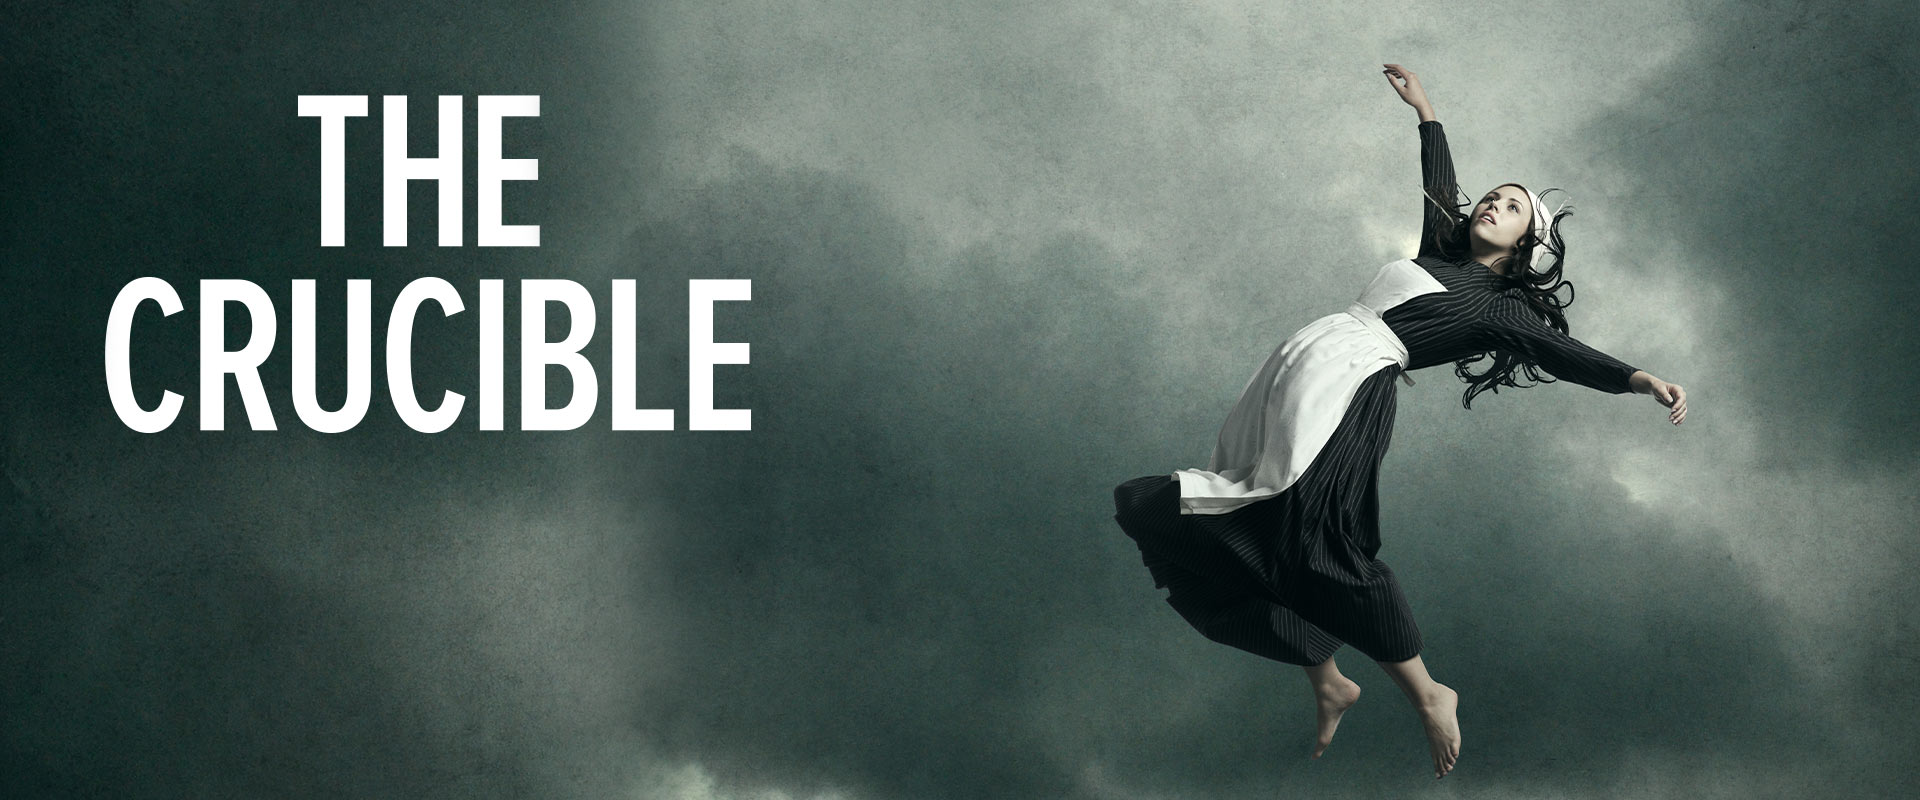 Publicity image from The Crucible